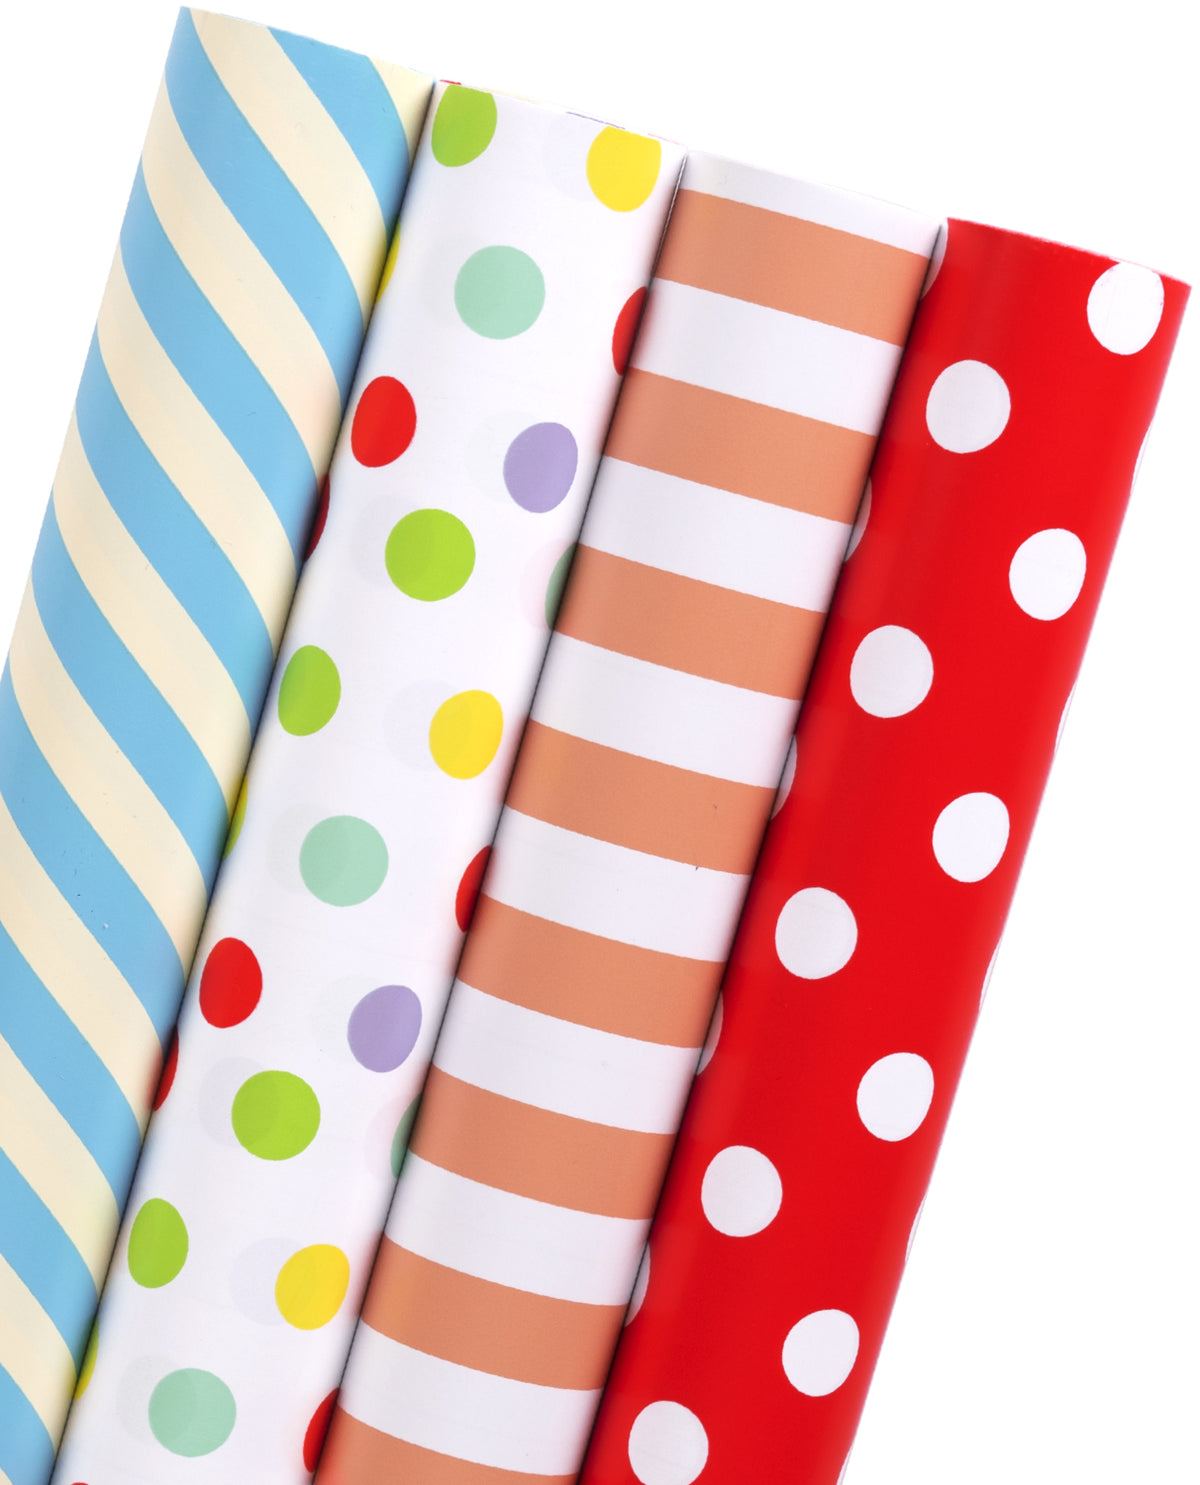 Wrapaholic-Stripes-and-Polka-Dot-Print-with-Cut-Lines-Gift-Wrapping- Paper-Roll-1